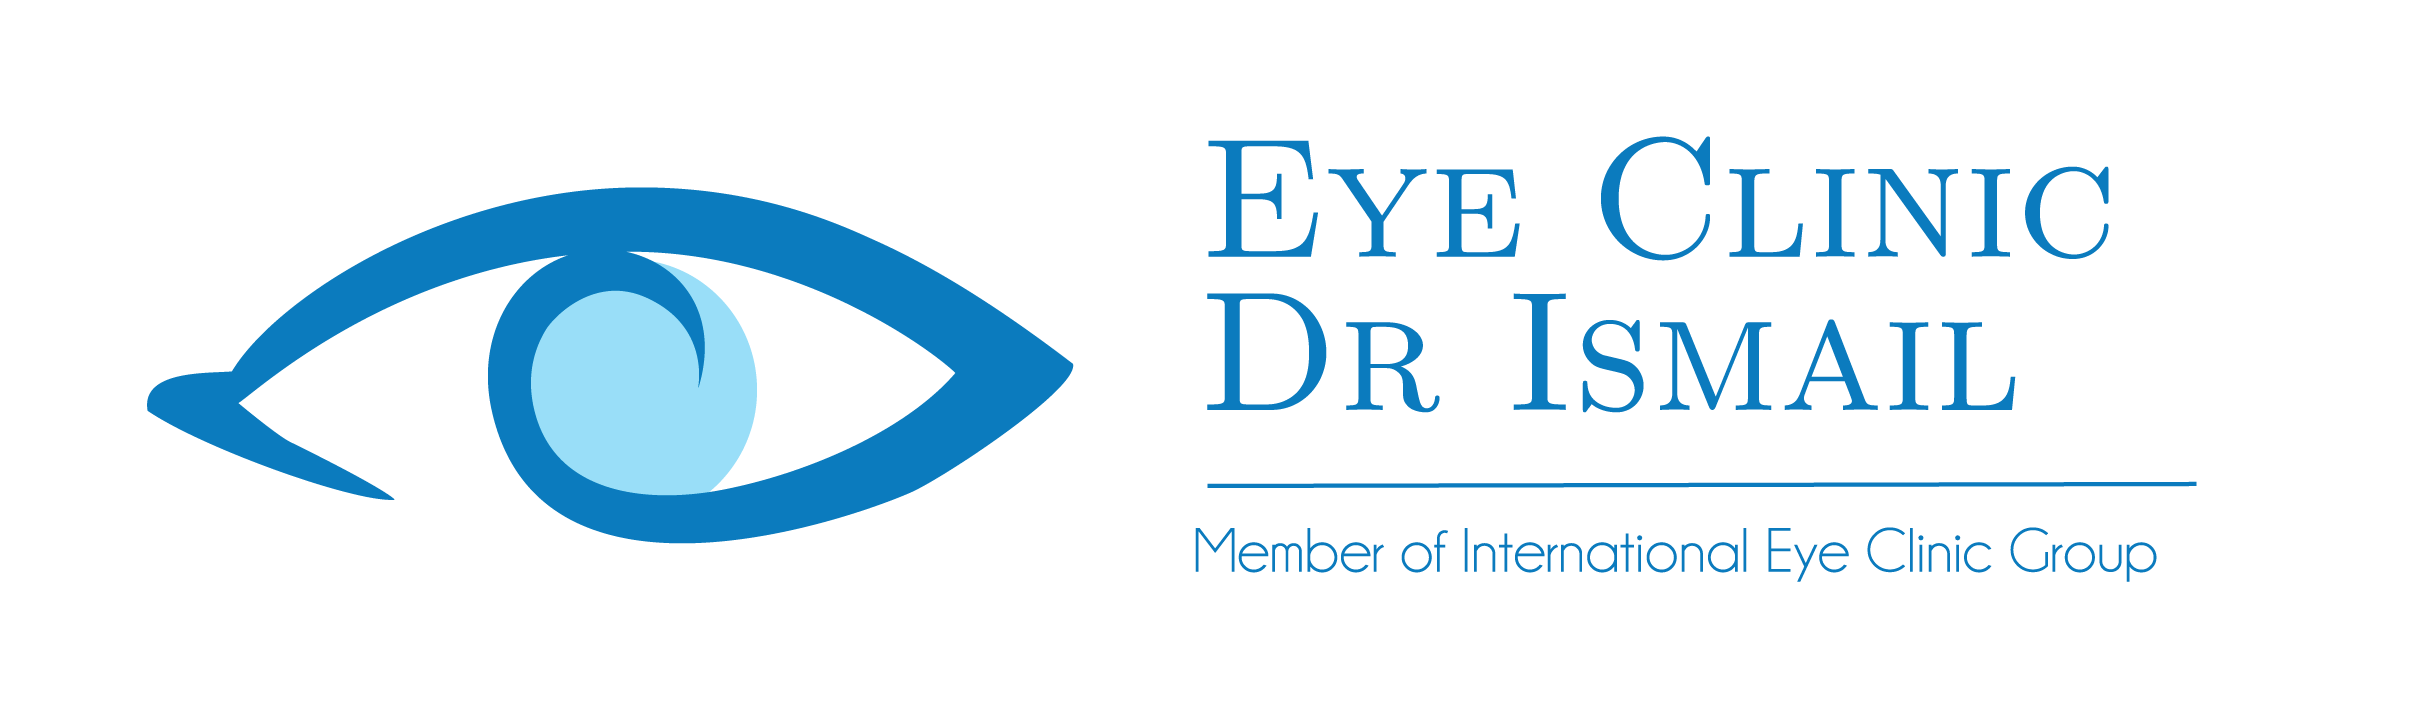 Eye Clinic Dr Ismail